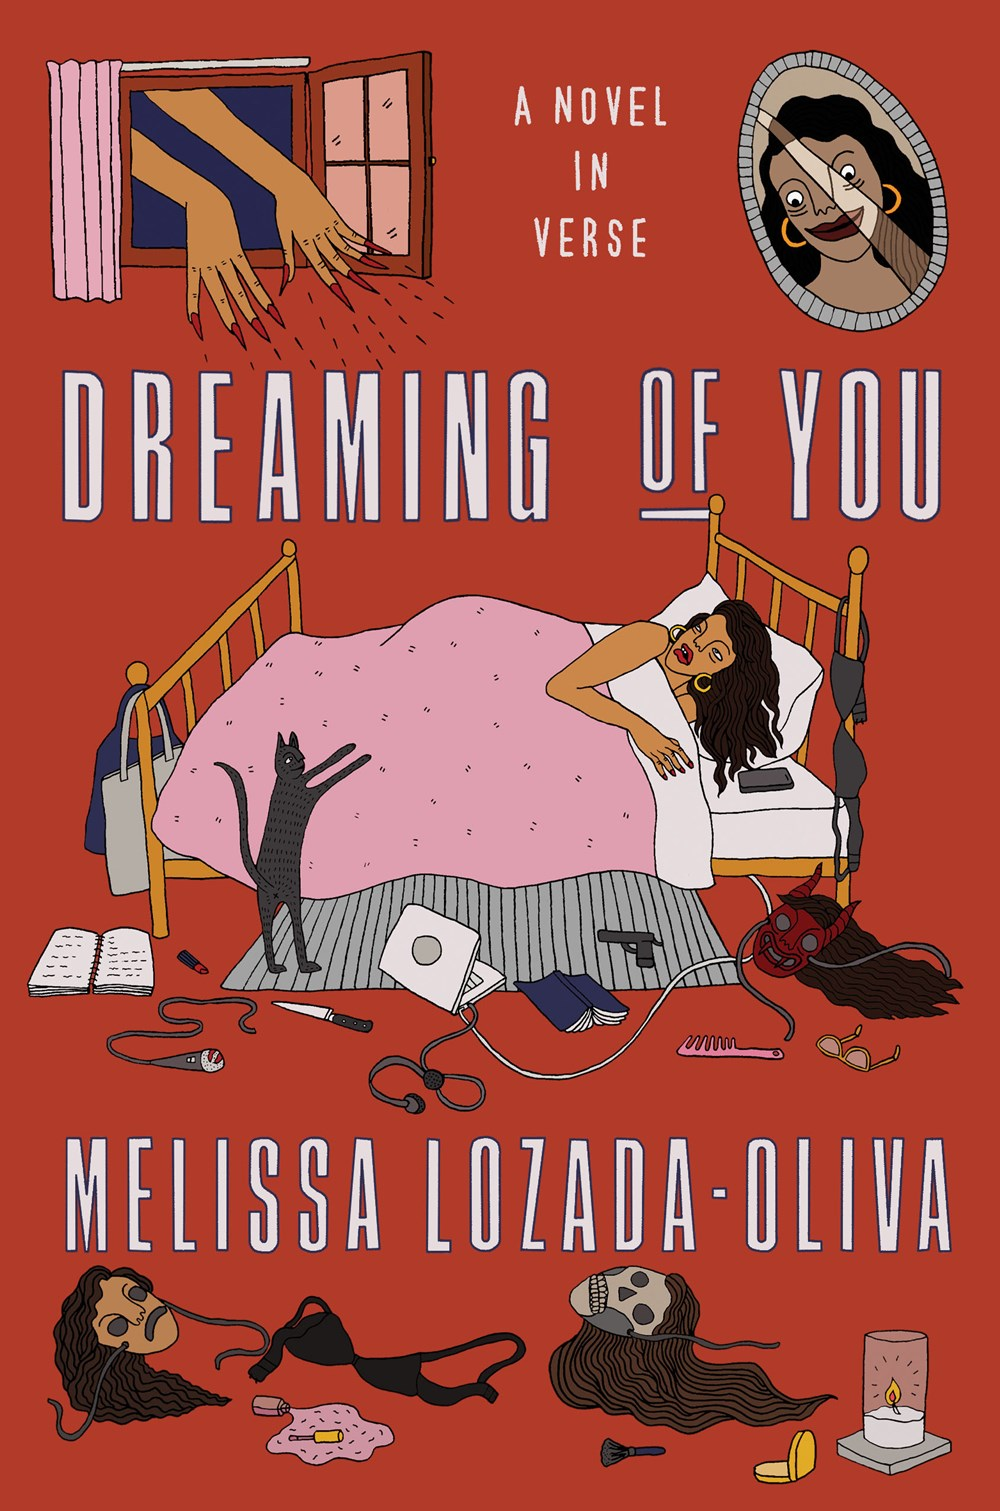 Dreaming of You: A Novel in Verse by Melissa Lozada-Oliva